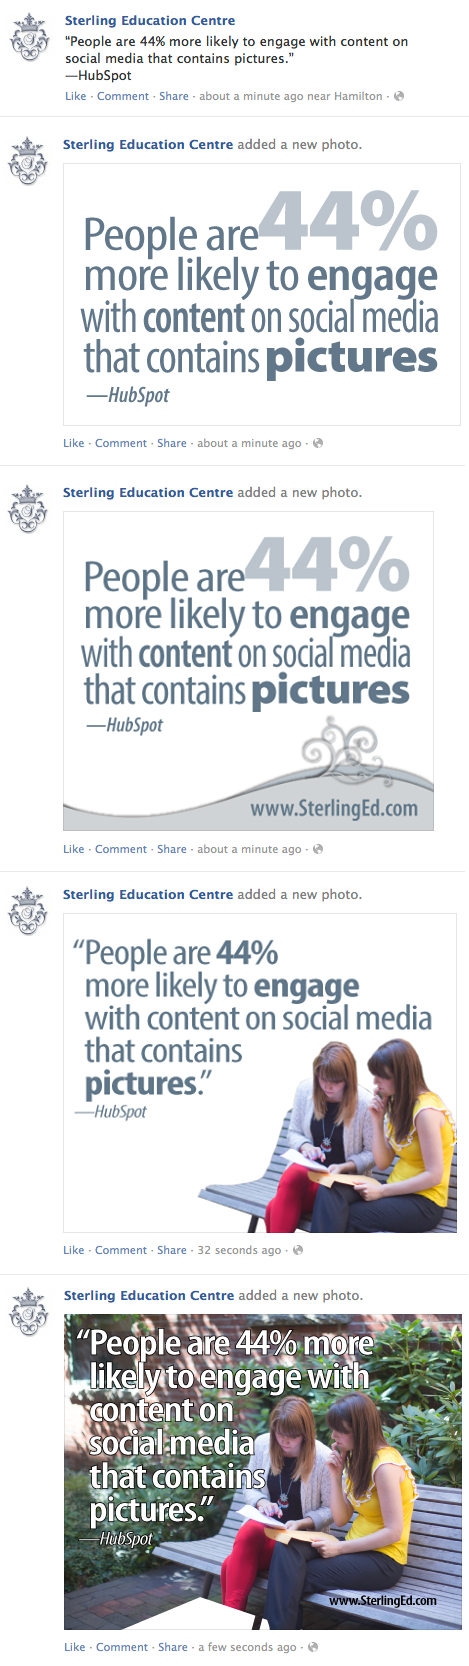 Do photos make a difference in social media?